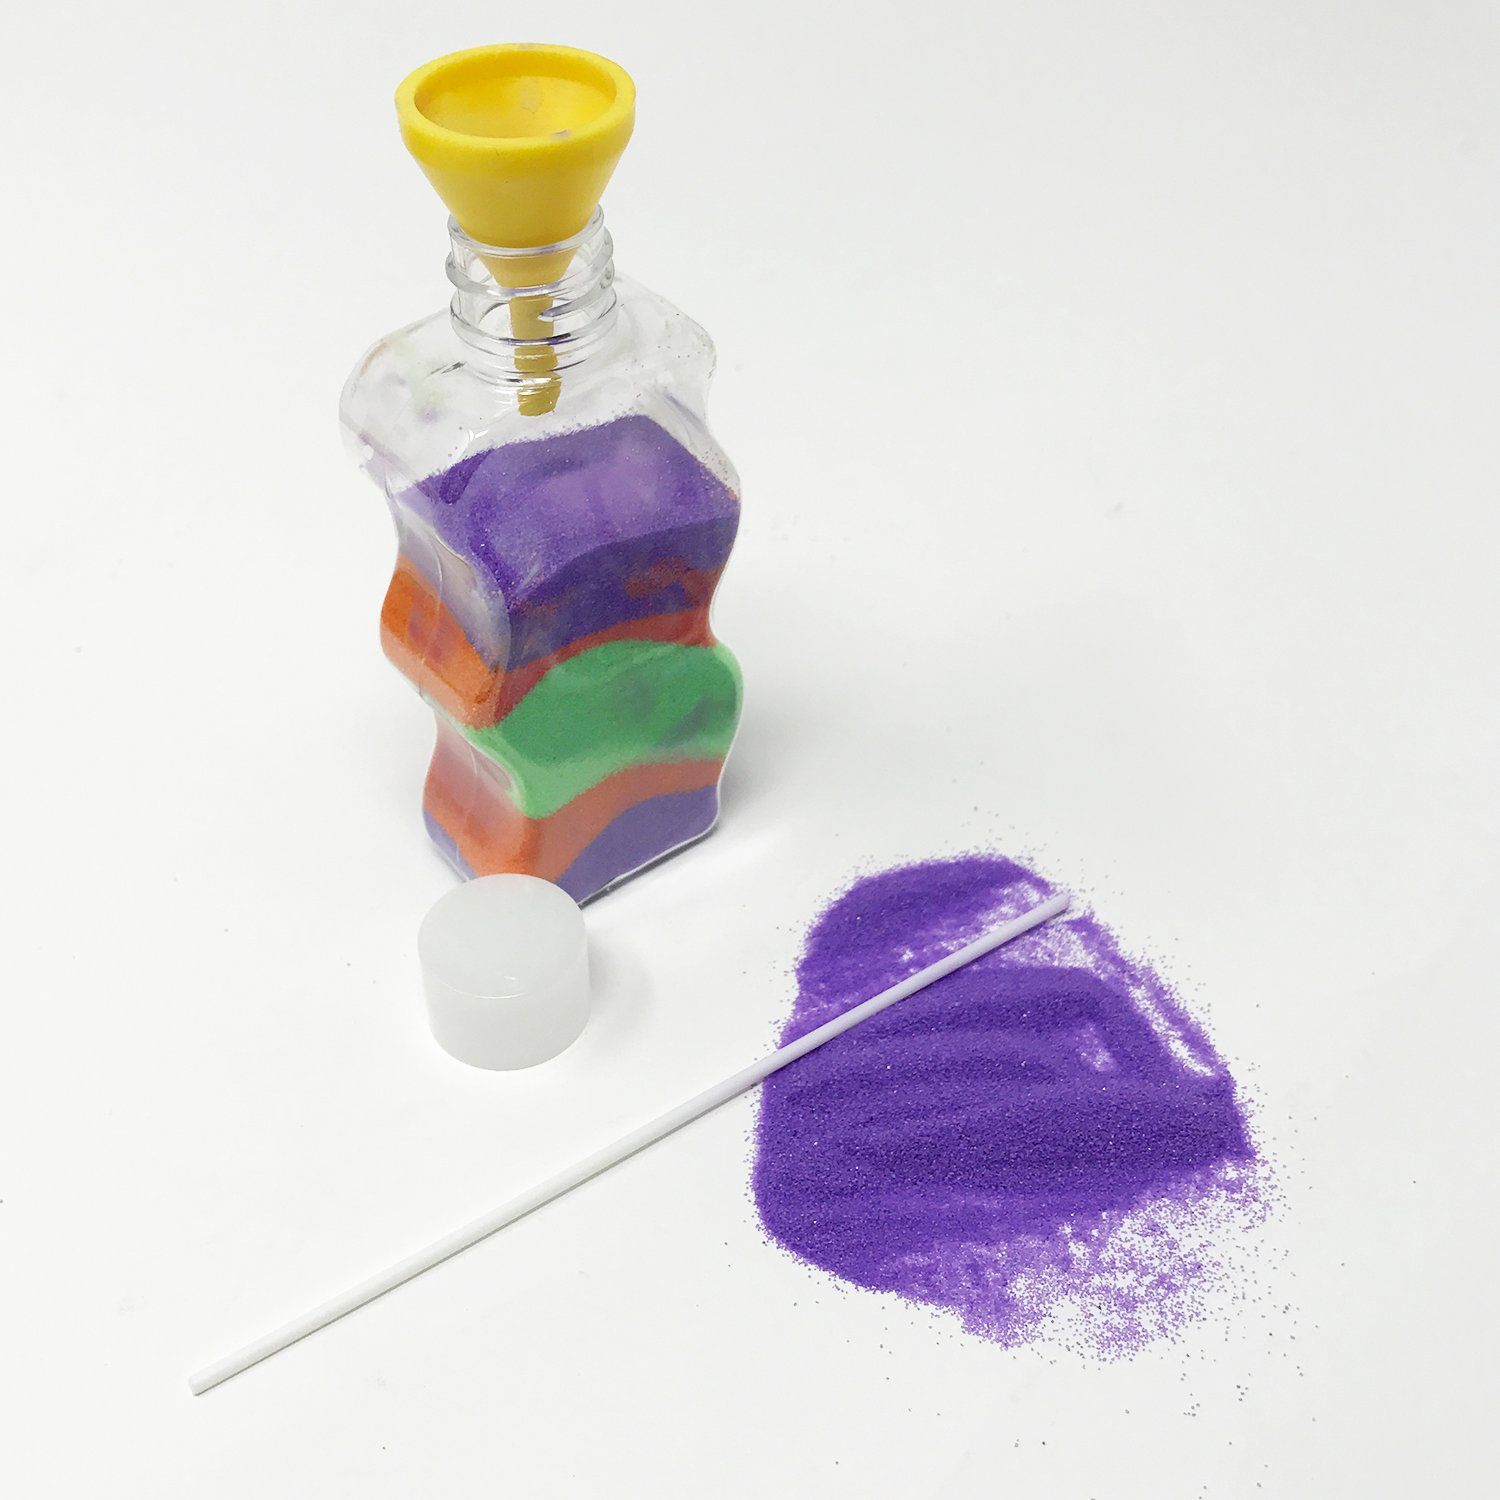 Great Art Set for Teachers and More! 12 Sticks 12 Funnels 36 Bags of Sand Sand Art Bottles Arts and Crafts Party Set For Kids Includes 12 Bottles Birthday Parties Boley Colored Sand Art Kit